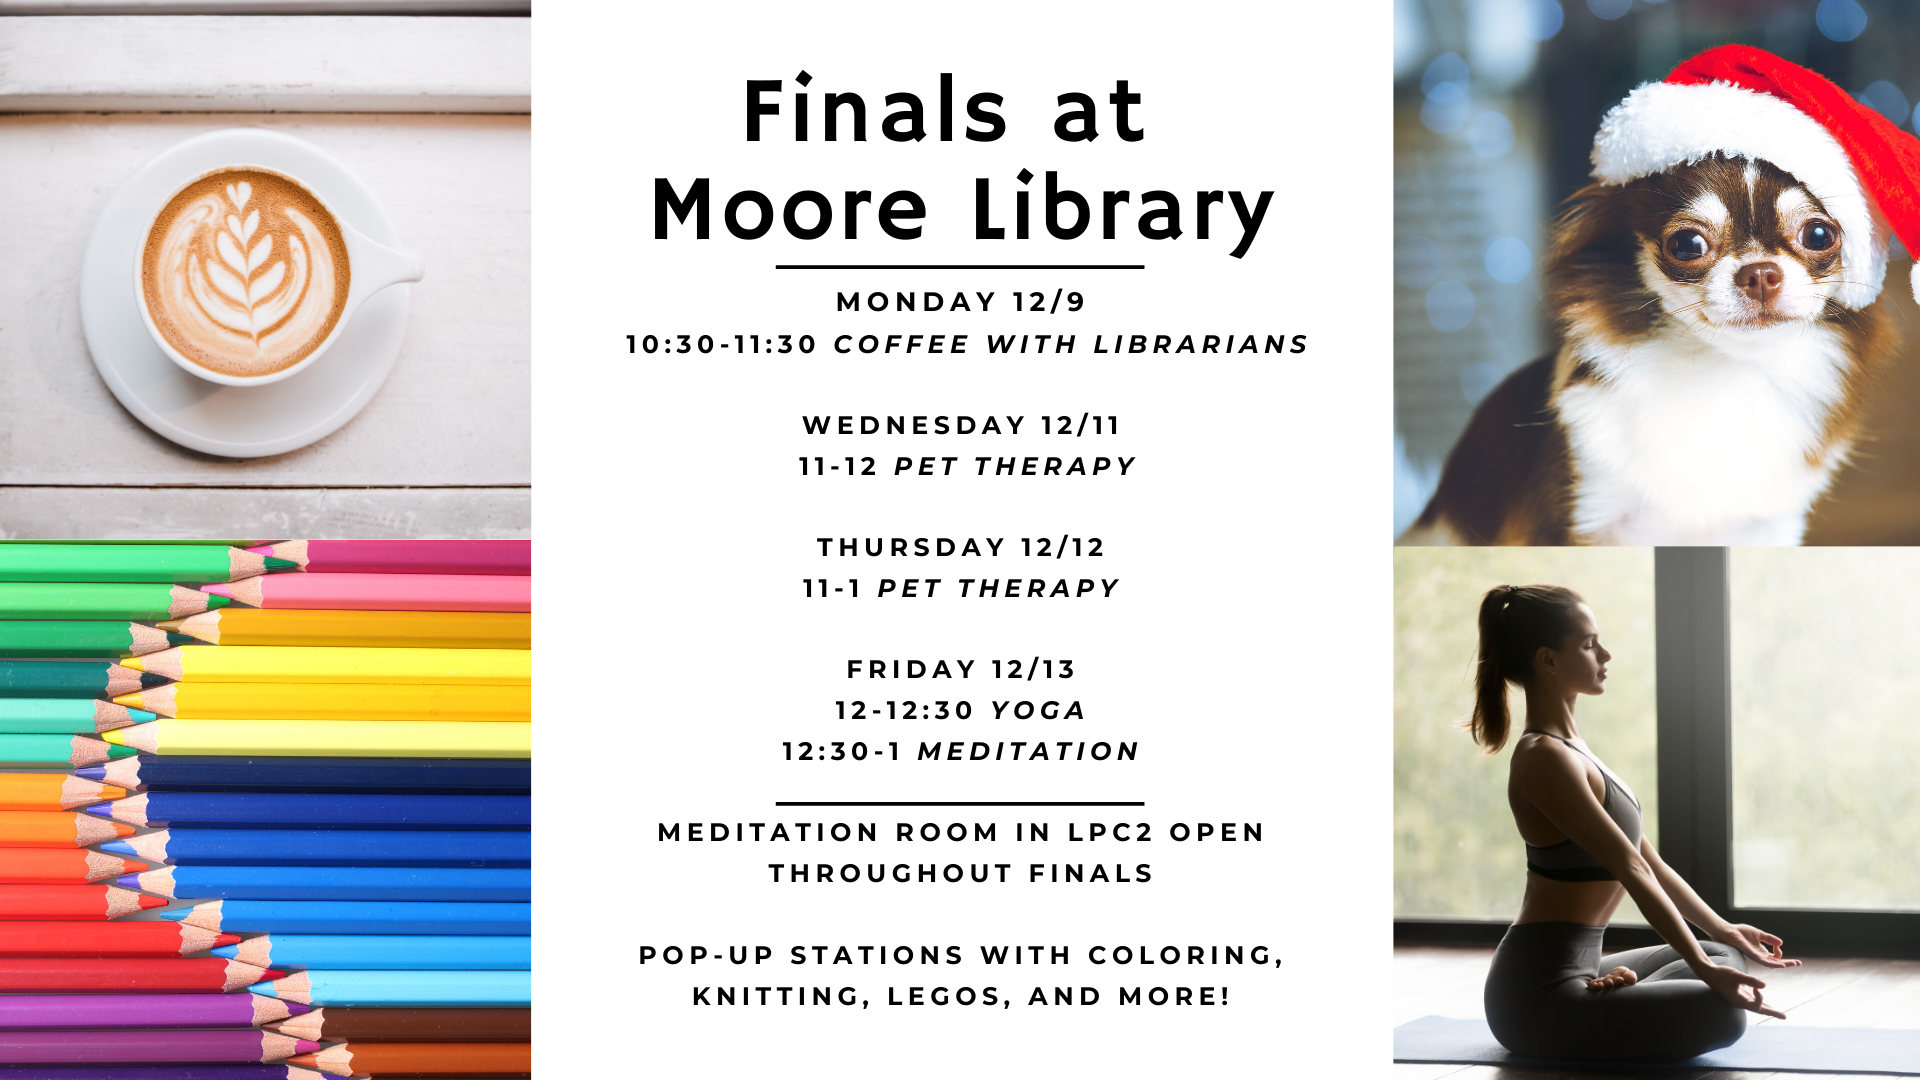 Finals Activities in the Moore Library